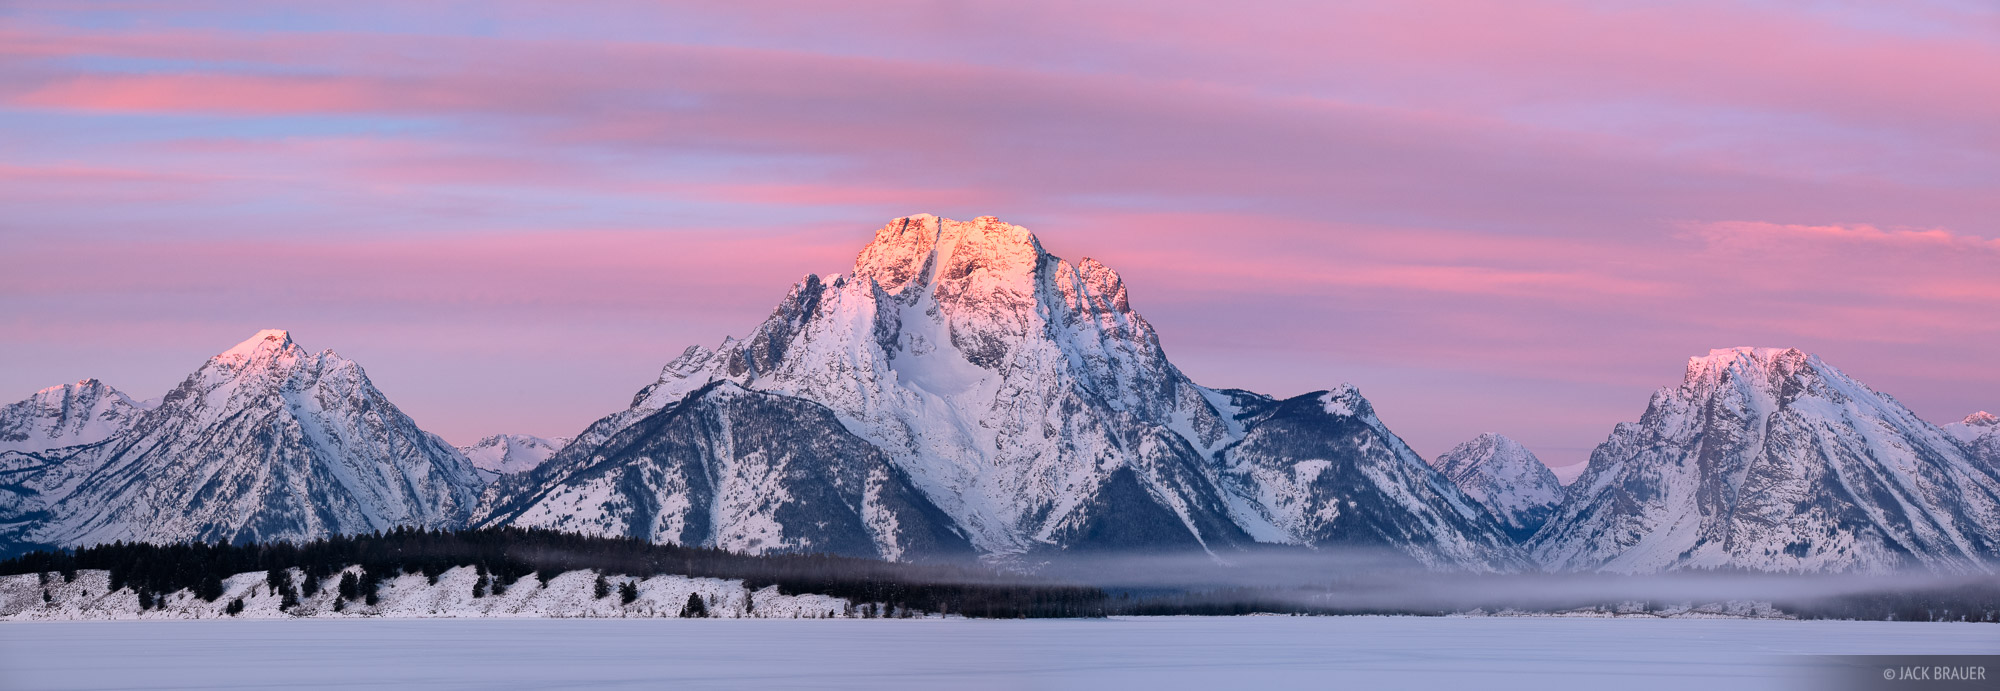 Mt. Moran, Tetons, Wyoming, sunrise, Jackson Lake, winter, panorama, Grand Teton National Park